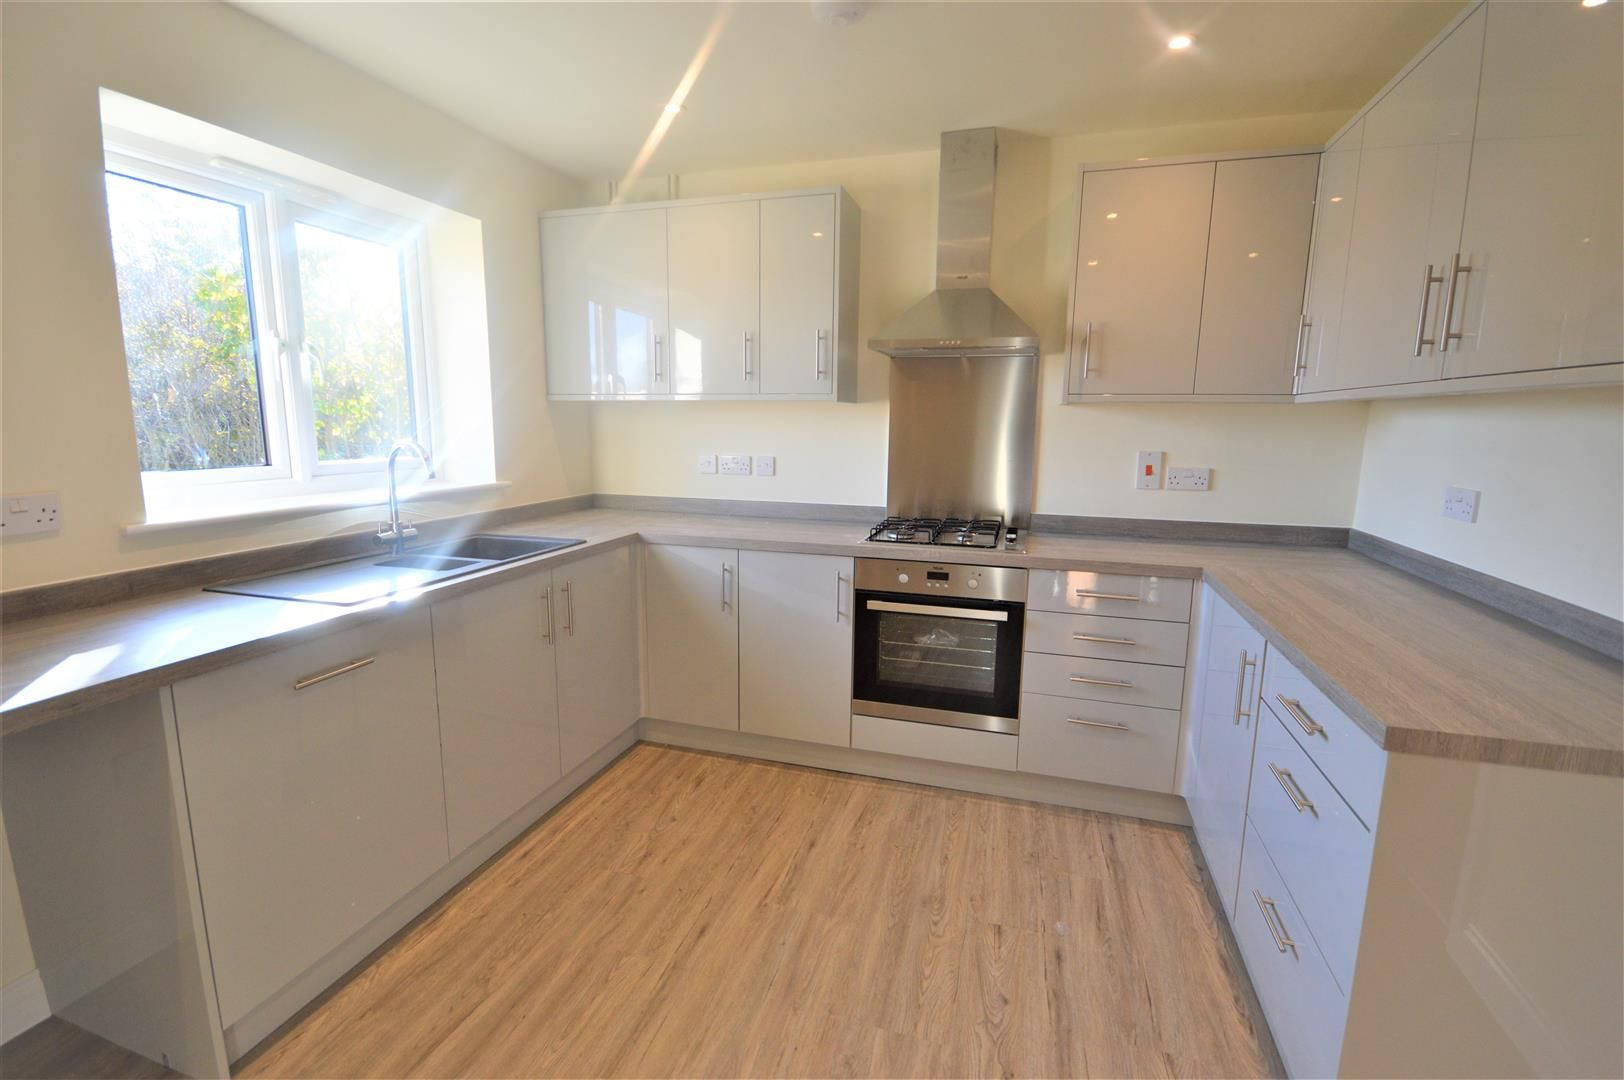 3 bed semi-detached for sale in Kingsland  - Property Image 4